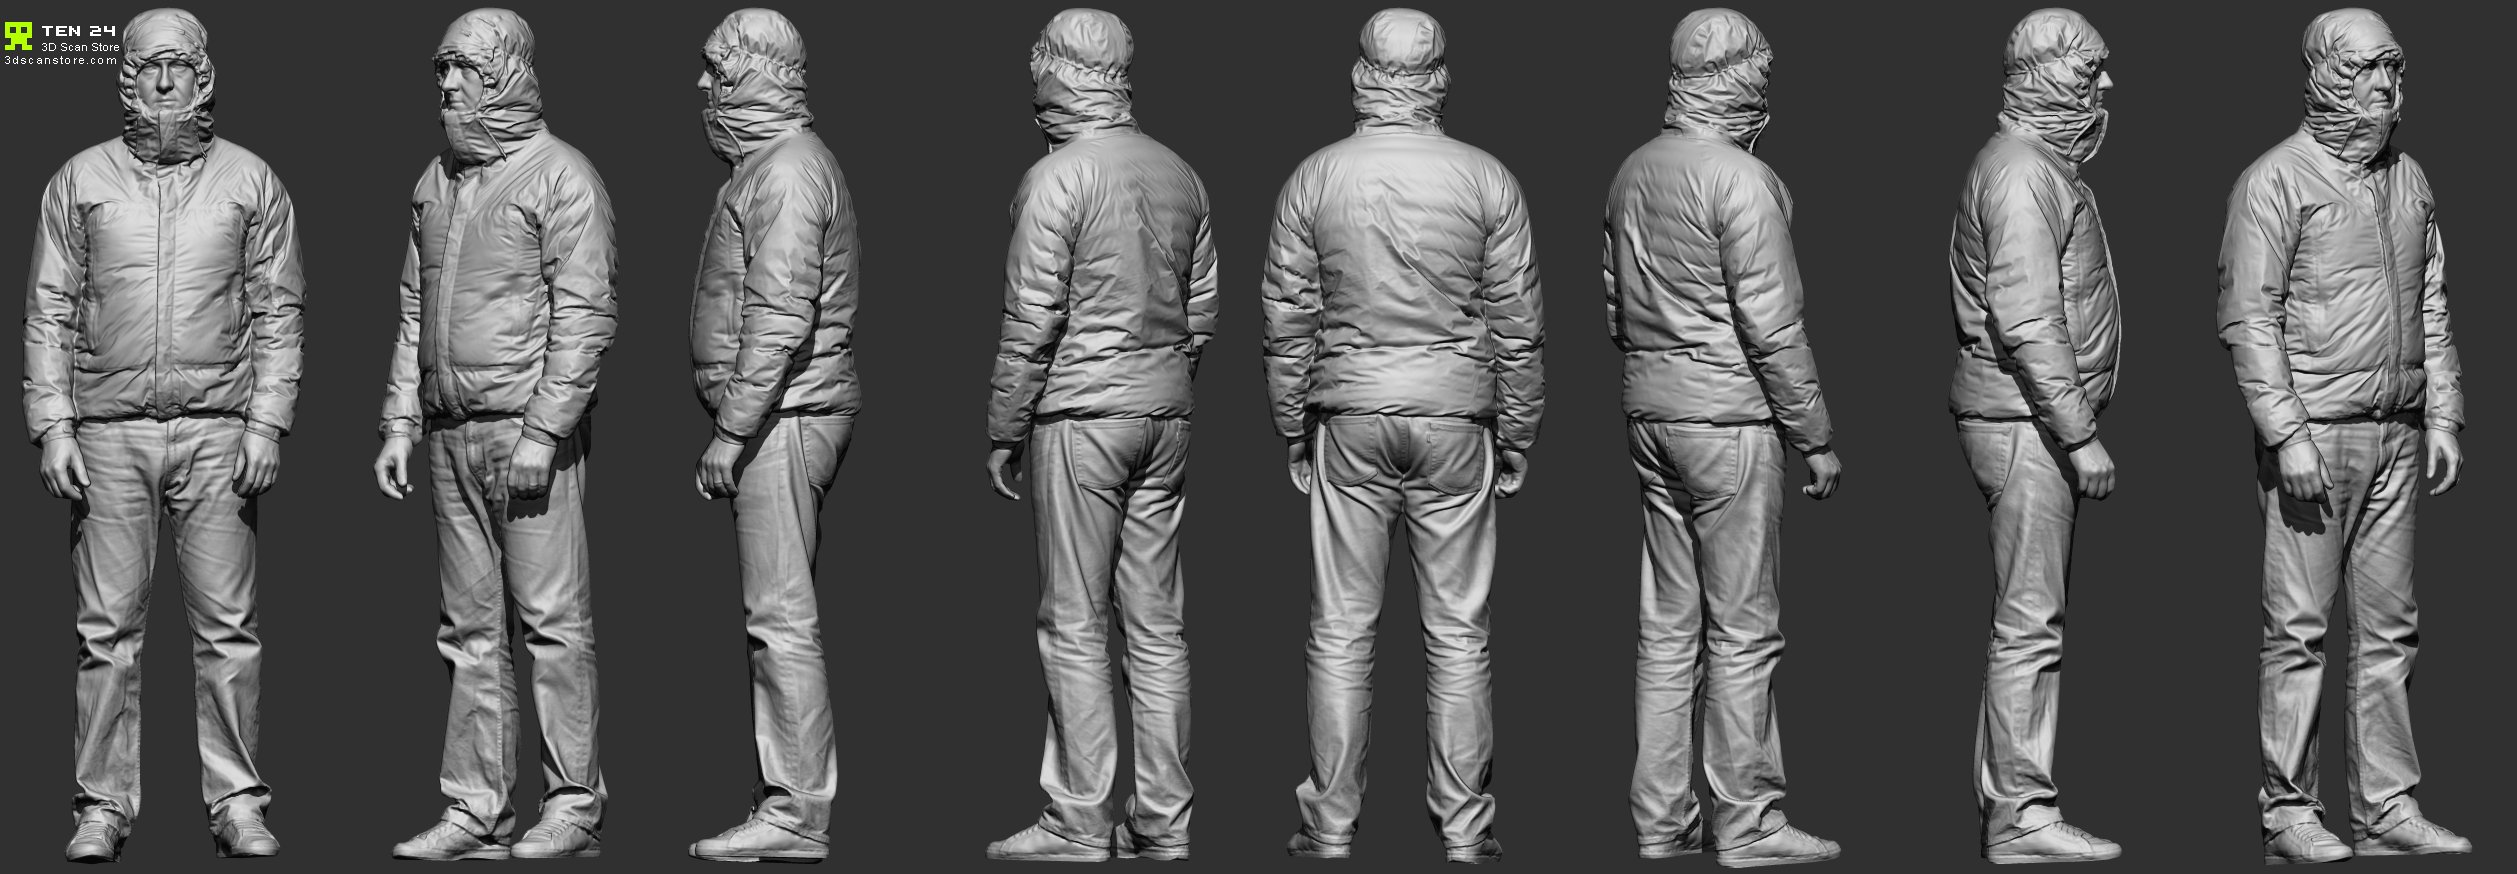 Full Body Scan Clothing Reference By Ten24 On Deviantart